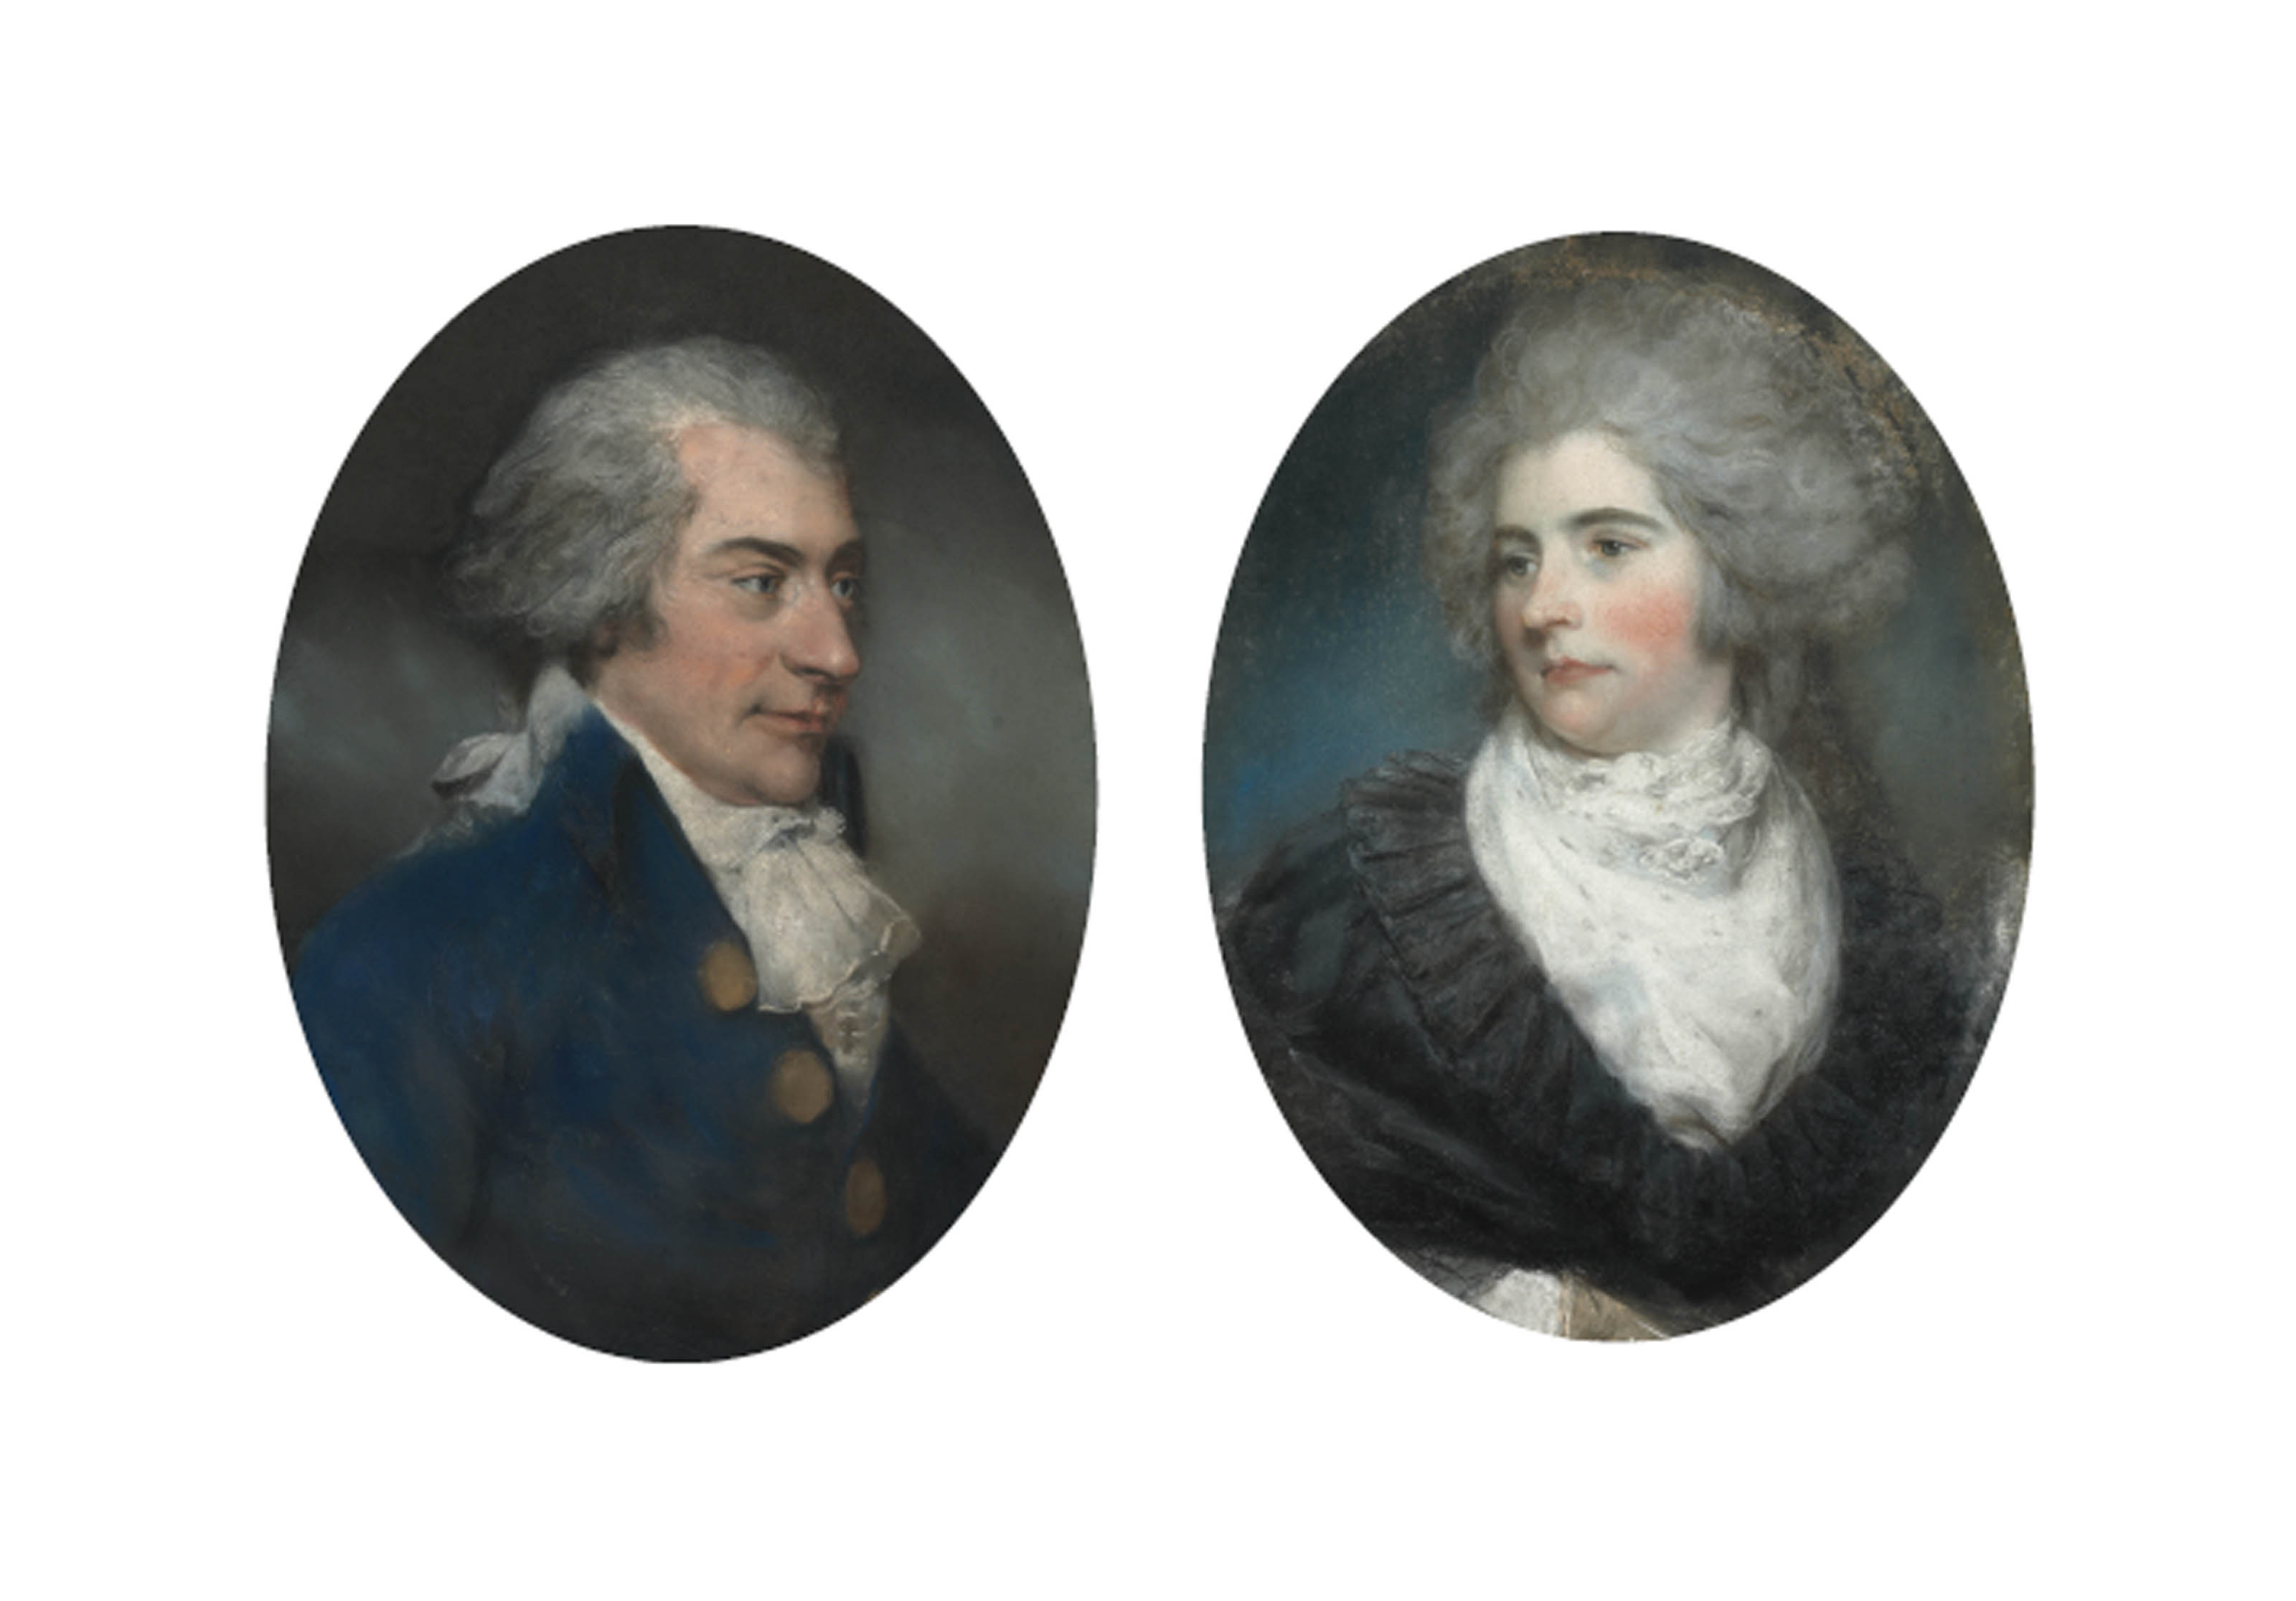 Portrait of Sir John Frederick, 5th Bt. (1750-1825), of Burwood Park, Walton-on-Thames, in a blue coat with powdered hair; and Portrait of Lady Frederick, née Mary Garth (d. 1794), in a white muslin dress with black lace cloak